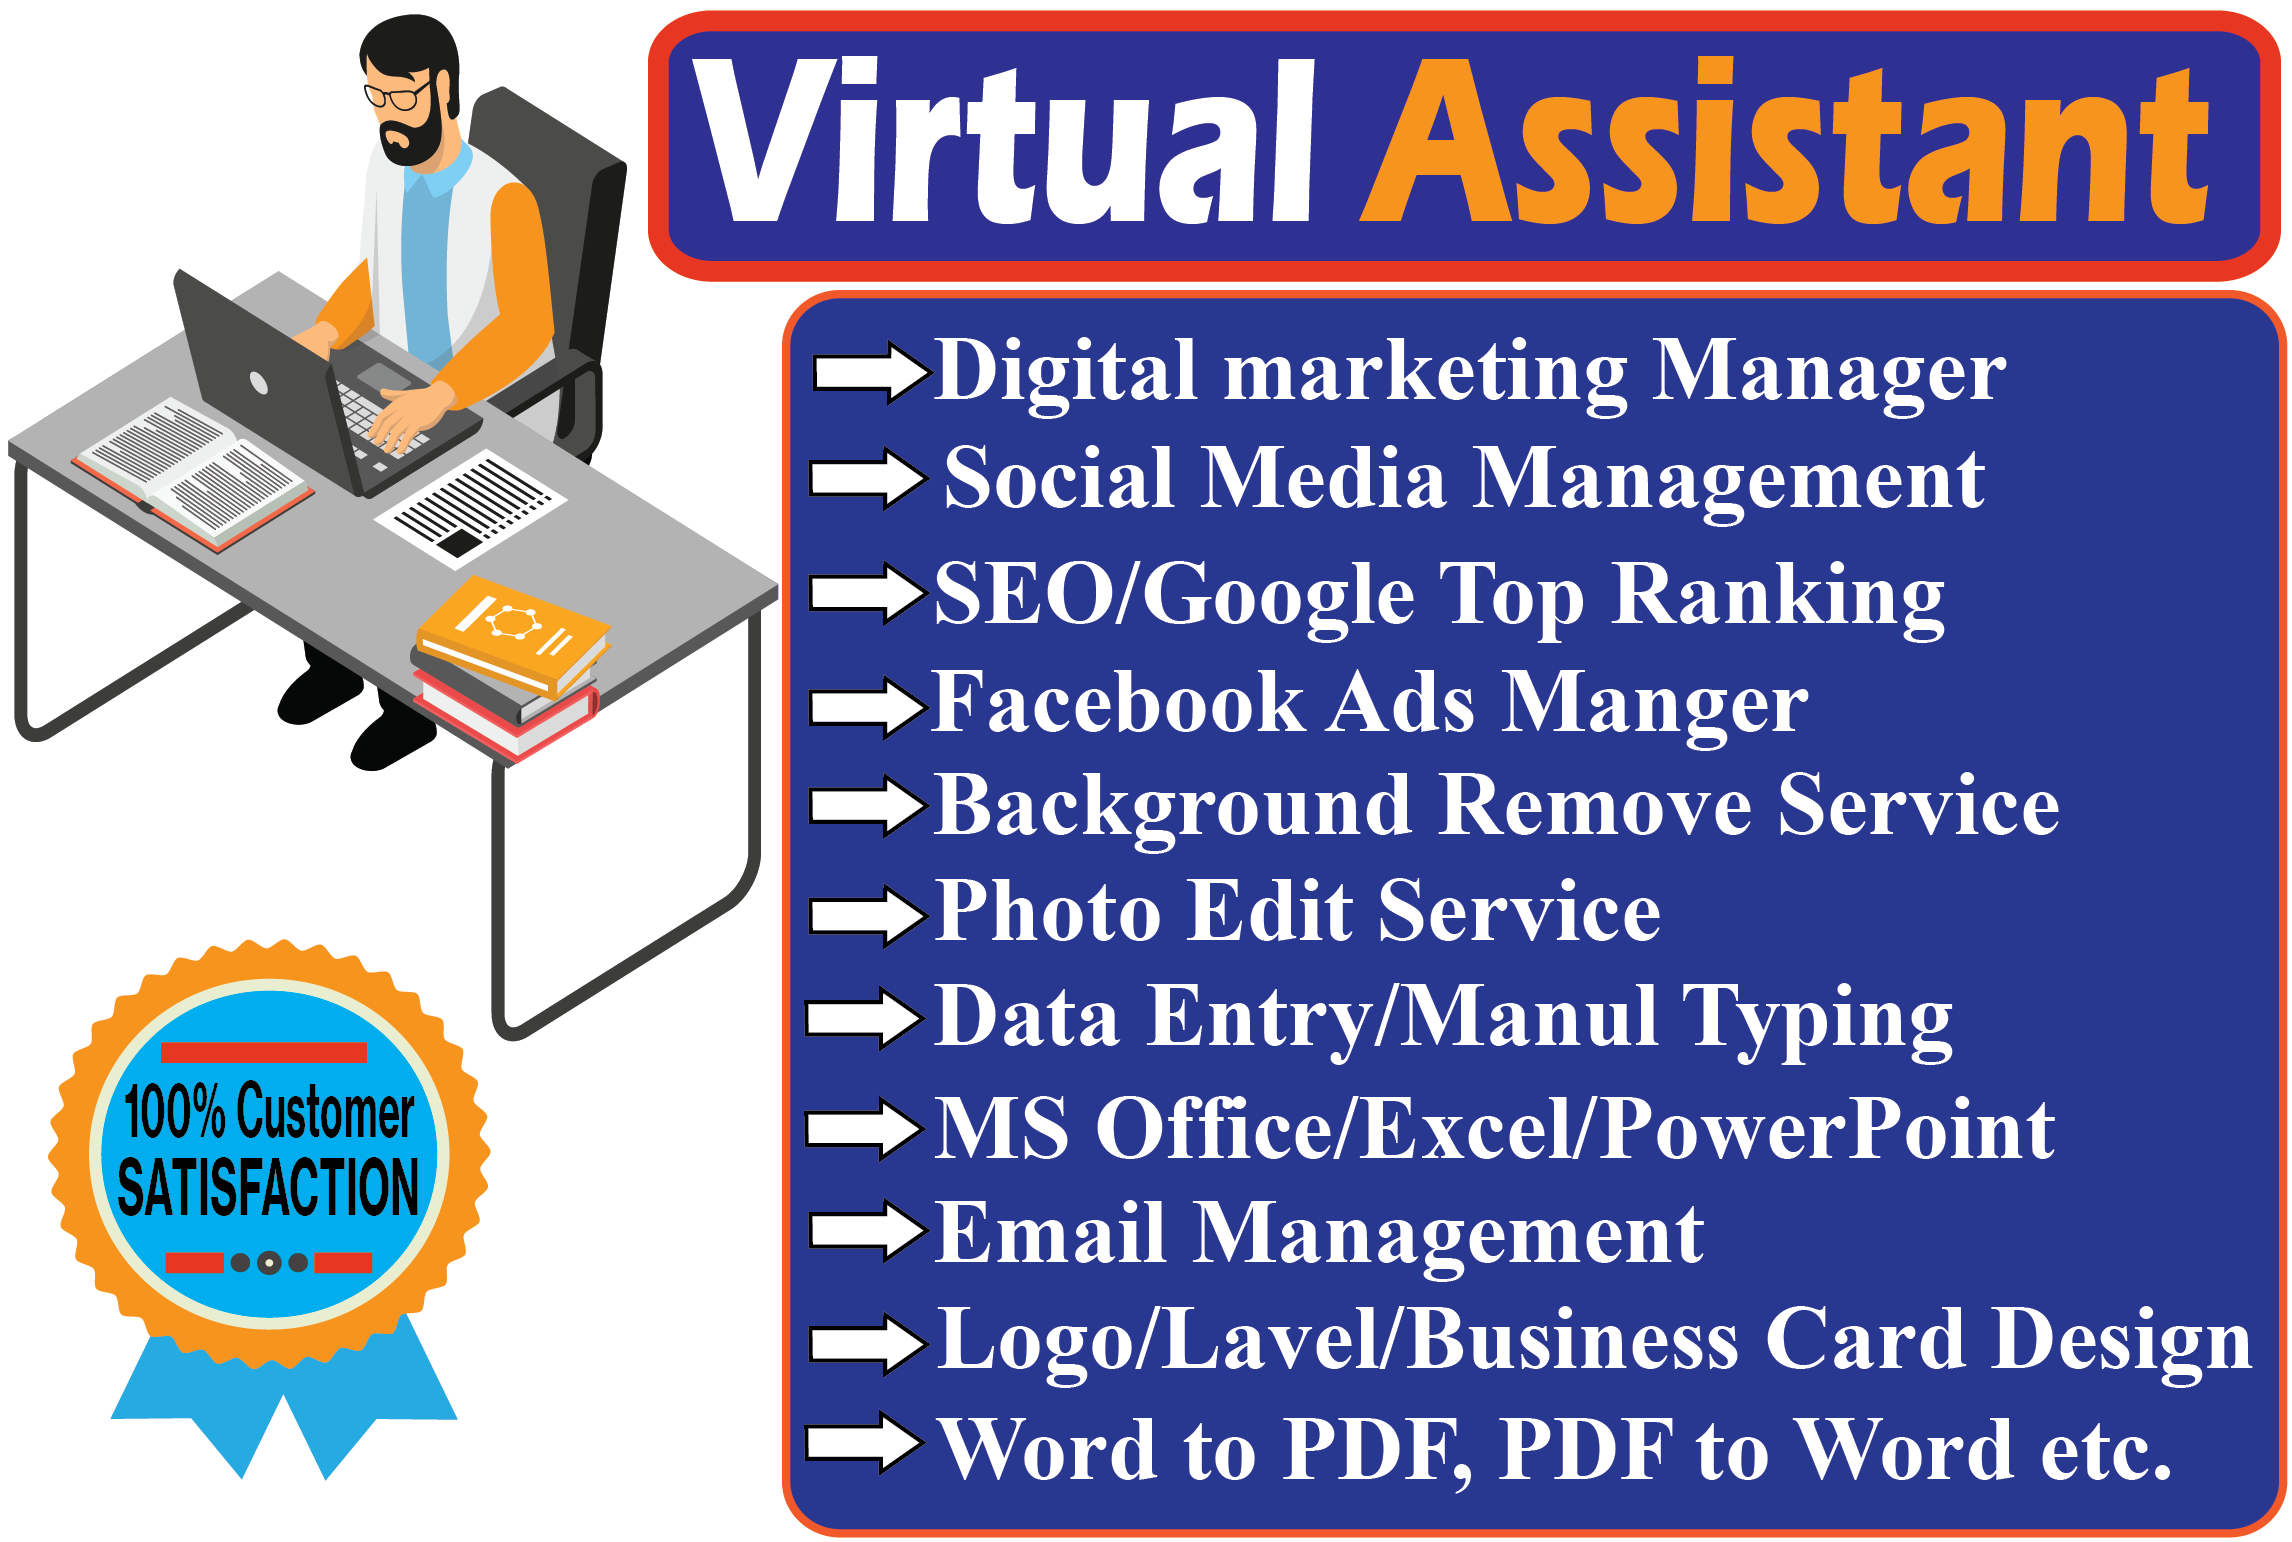 I will be your Personal Assistant / Virtual Assistant / Administrative Virtual Assistant